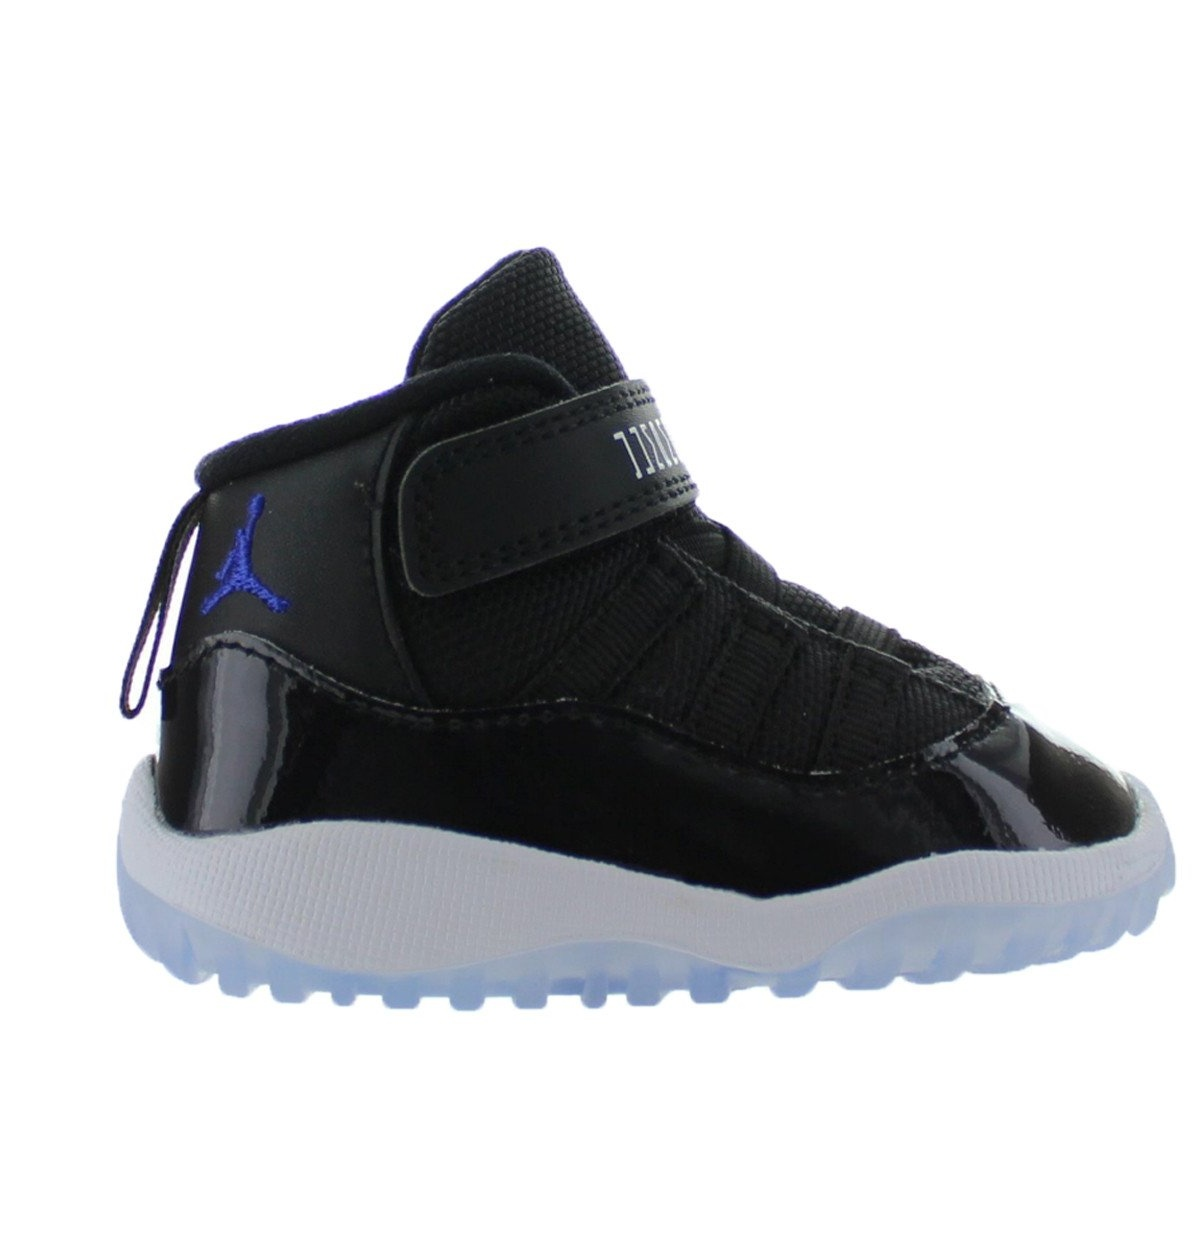 9dc63588fc74f0 ... free shipping kids air jordan 11 xi retro td toddler space jam black  dark conc cf5eb